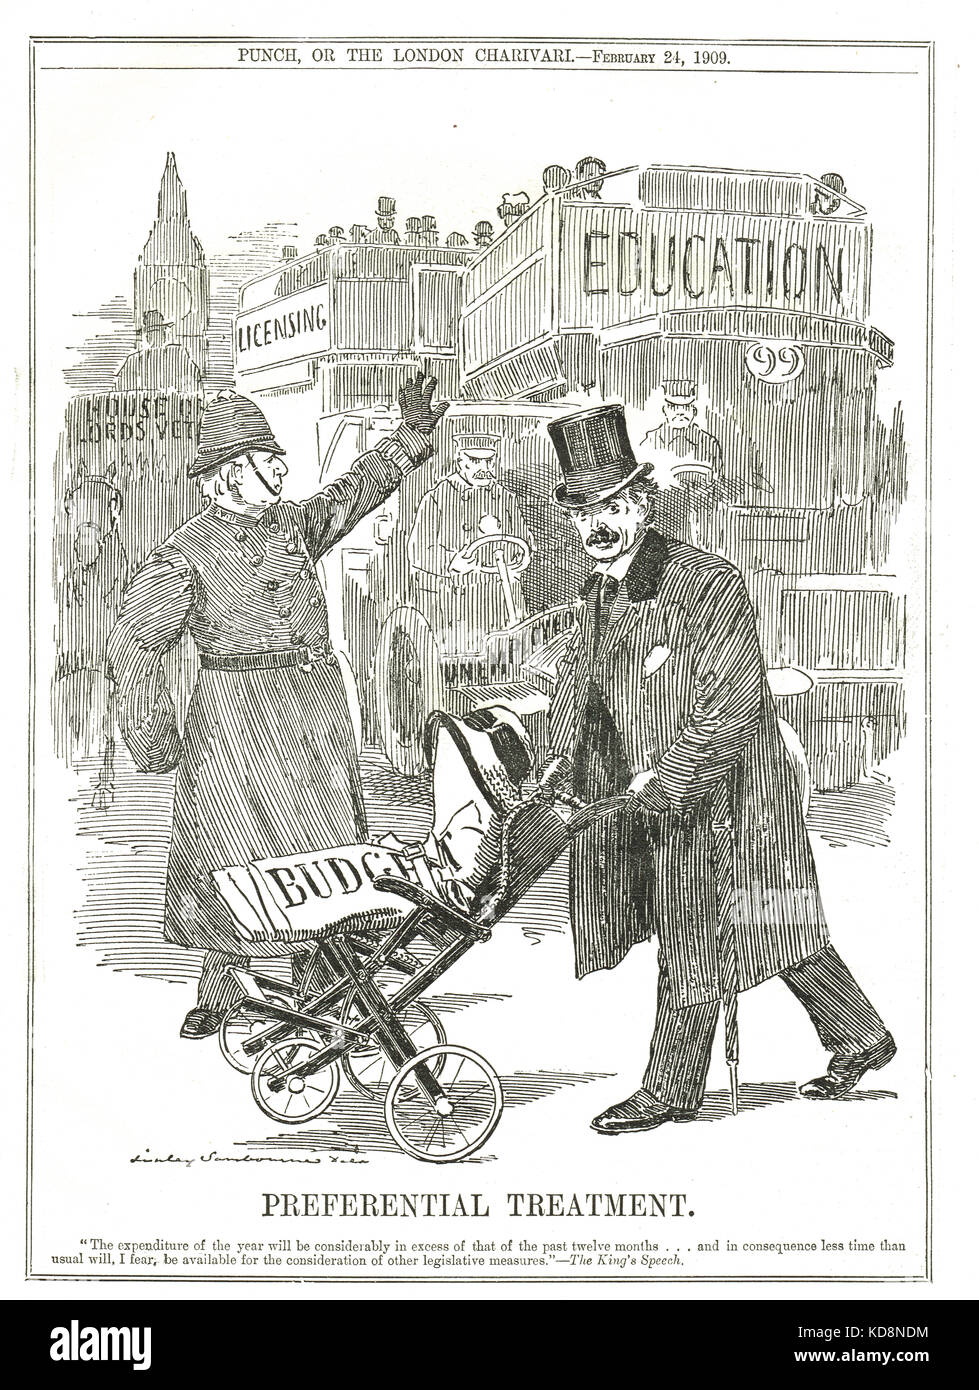 The People's budget, Punch cartoon, 1909 - Stock Image